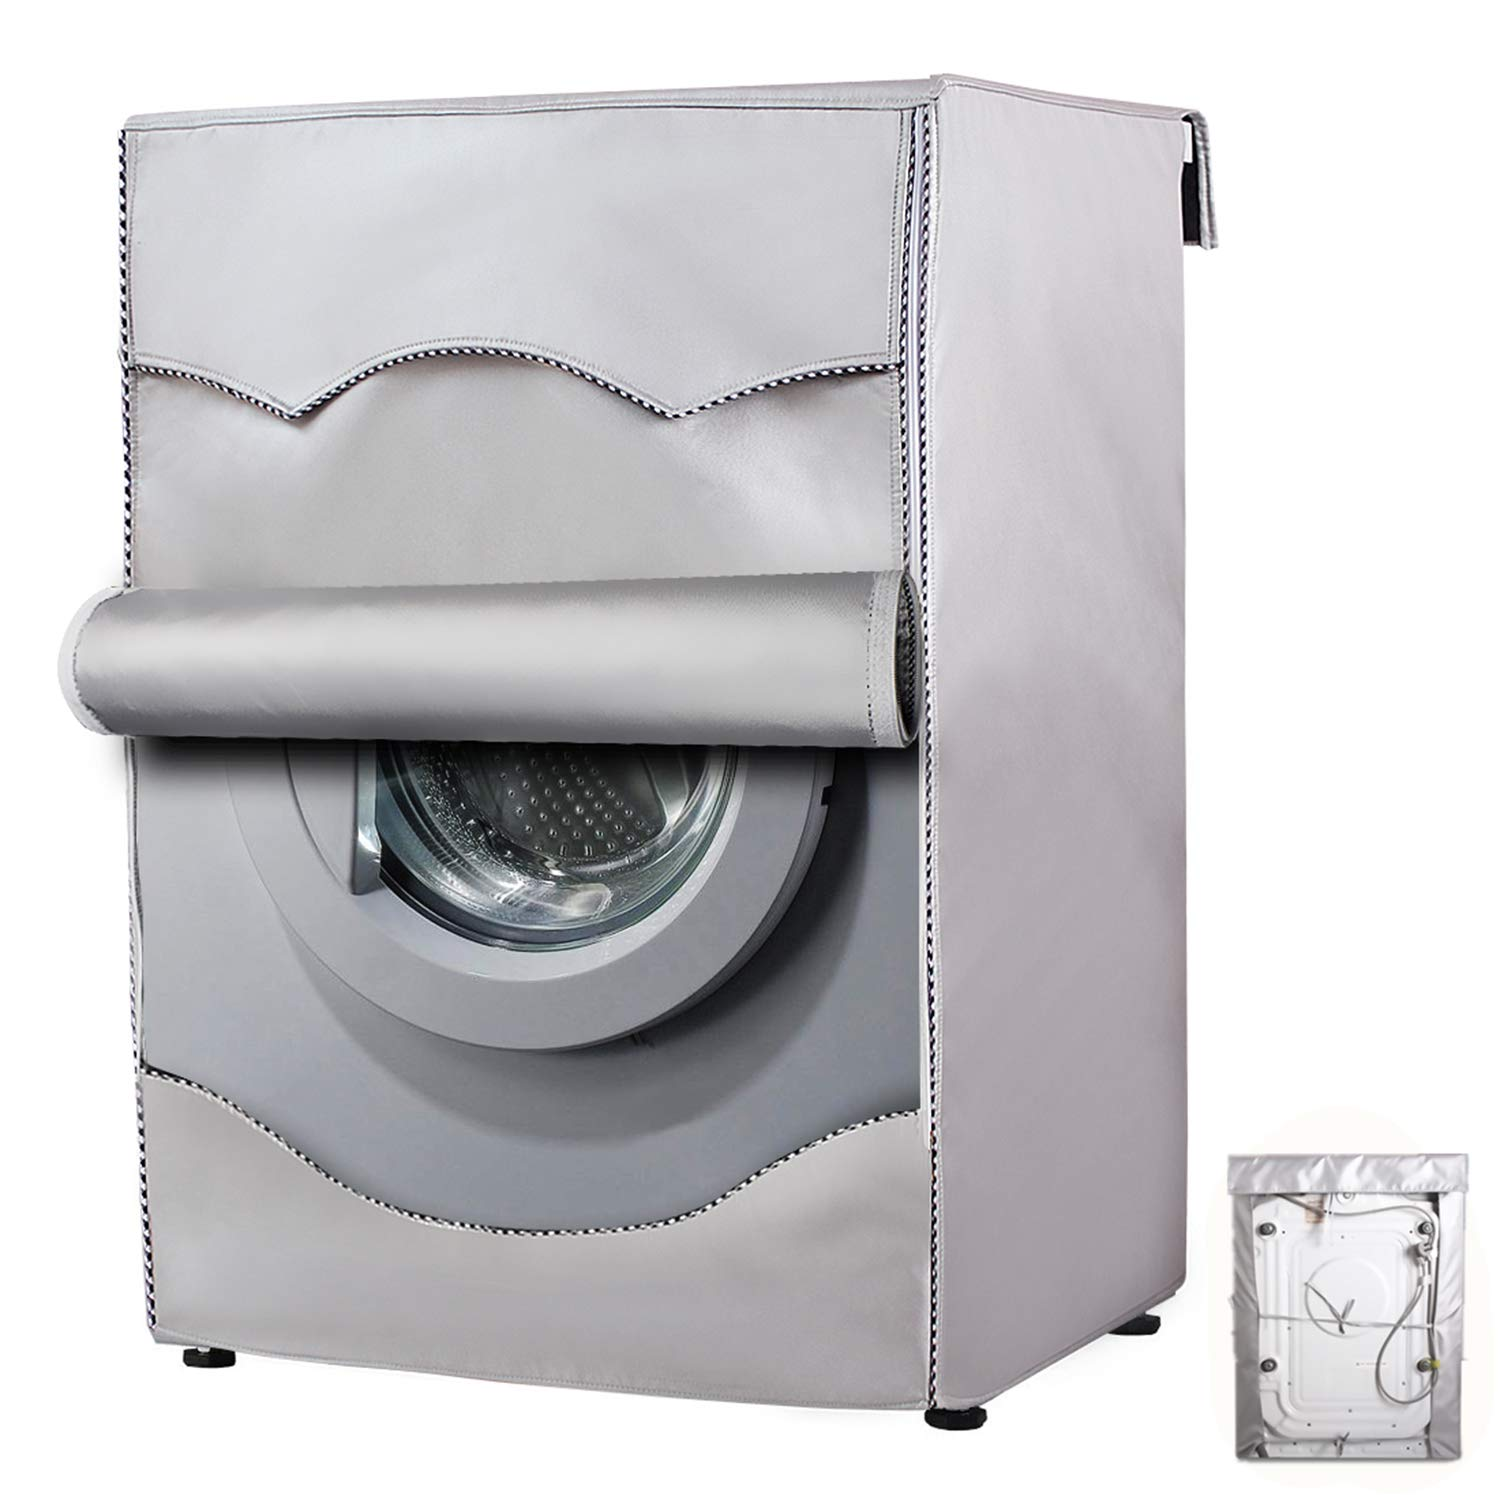 Washer/Dryer Cover for Front-Loading Machine Waterproof dustproof Thin (W27 D33 H39 in,Thin) by Mr.You